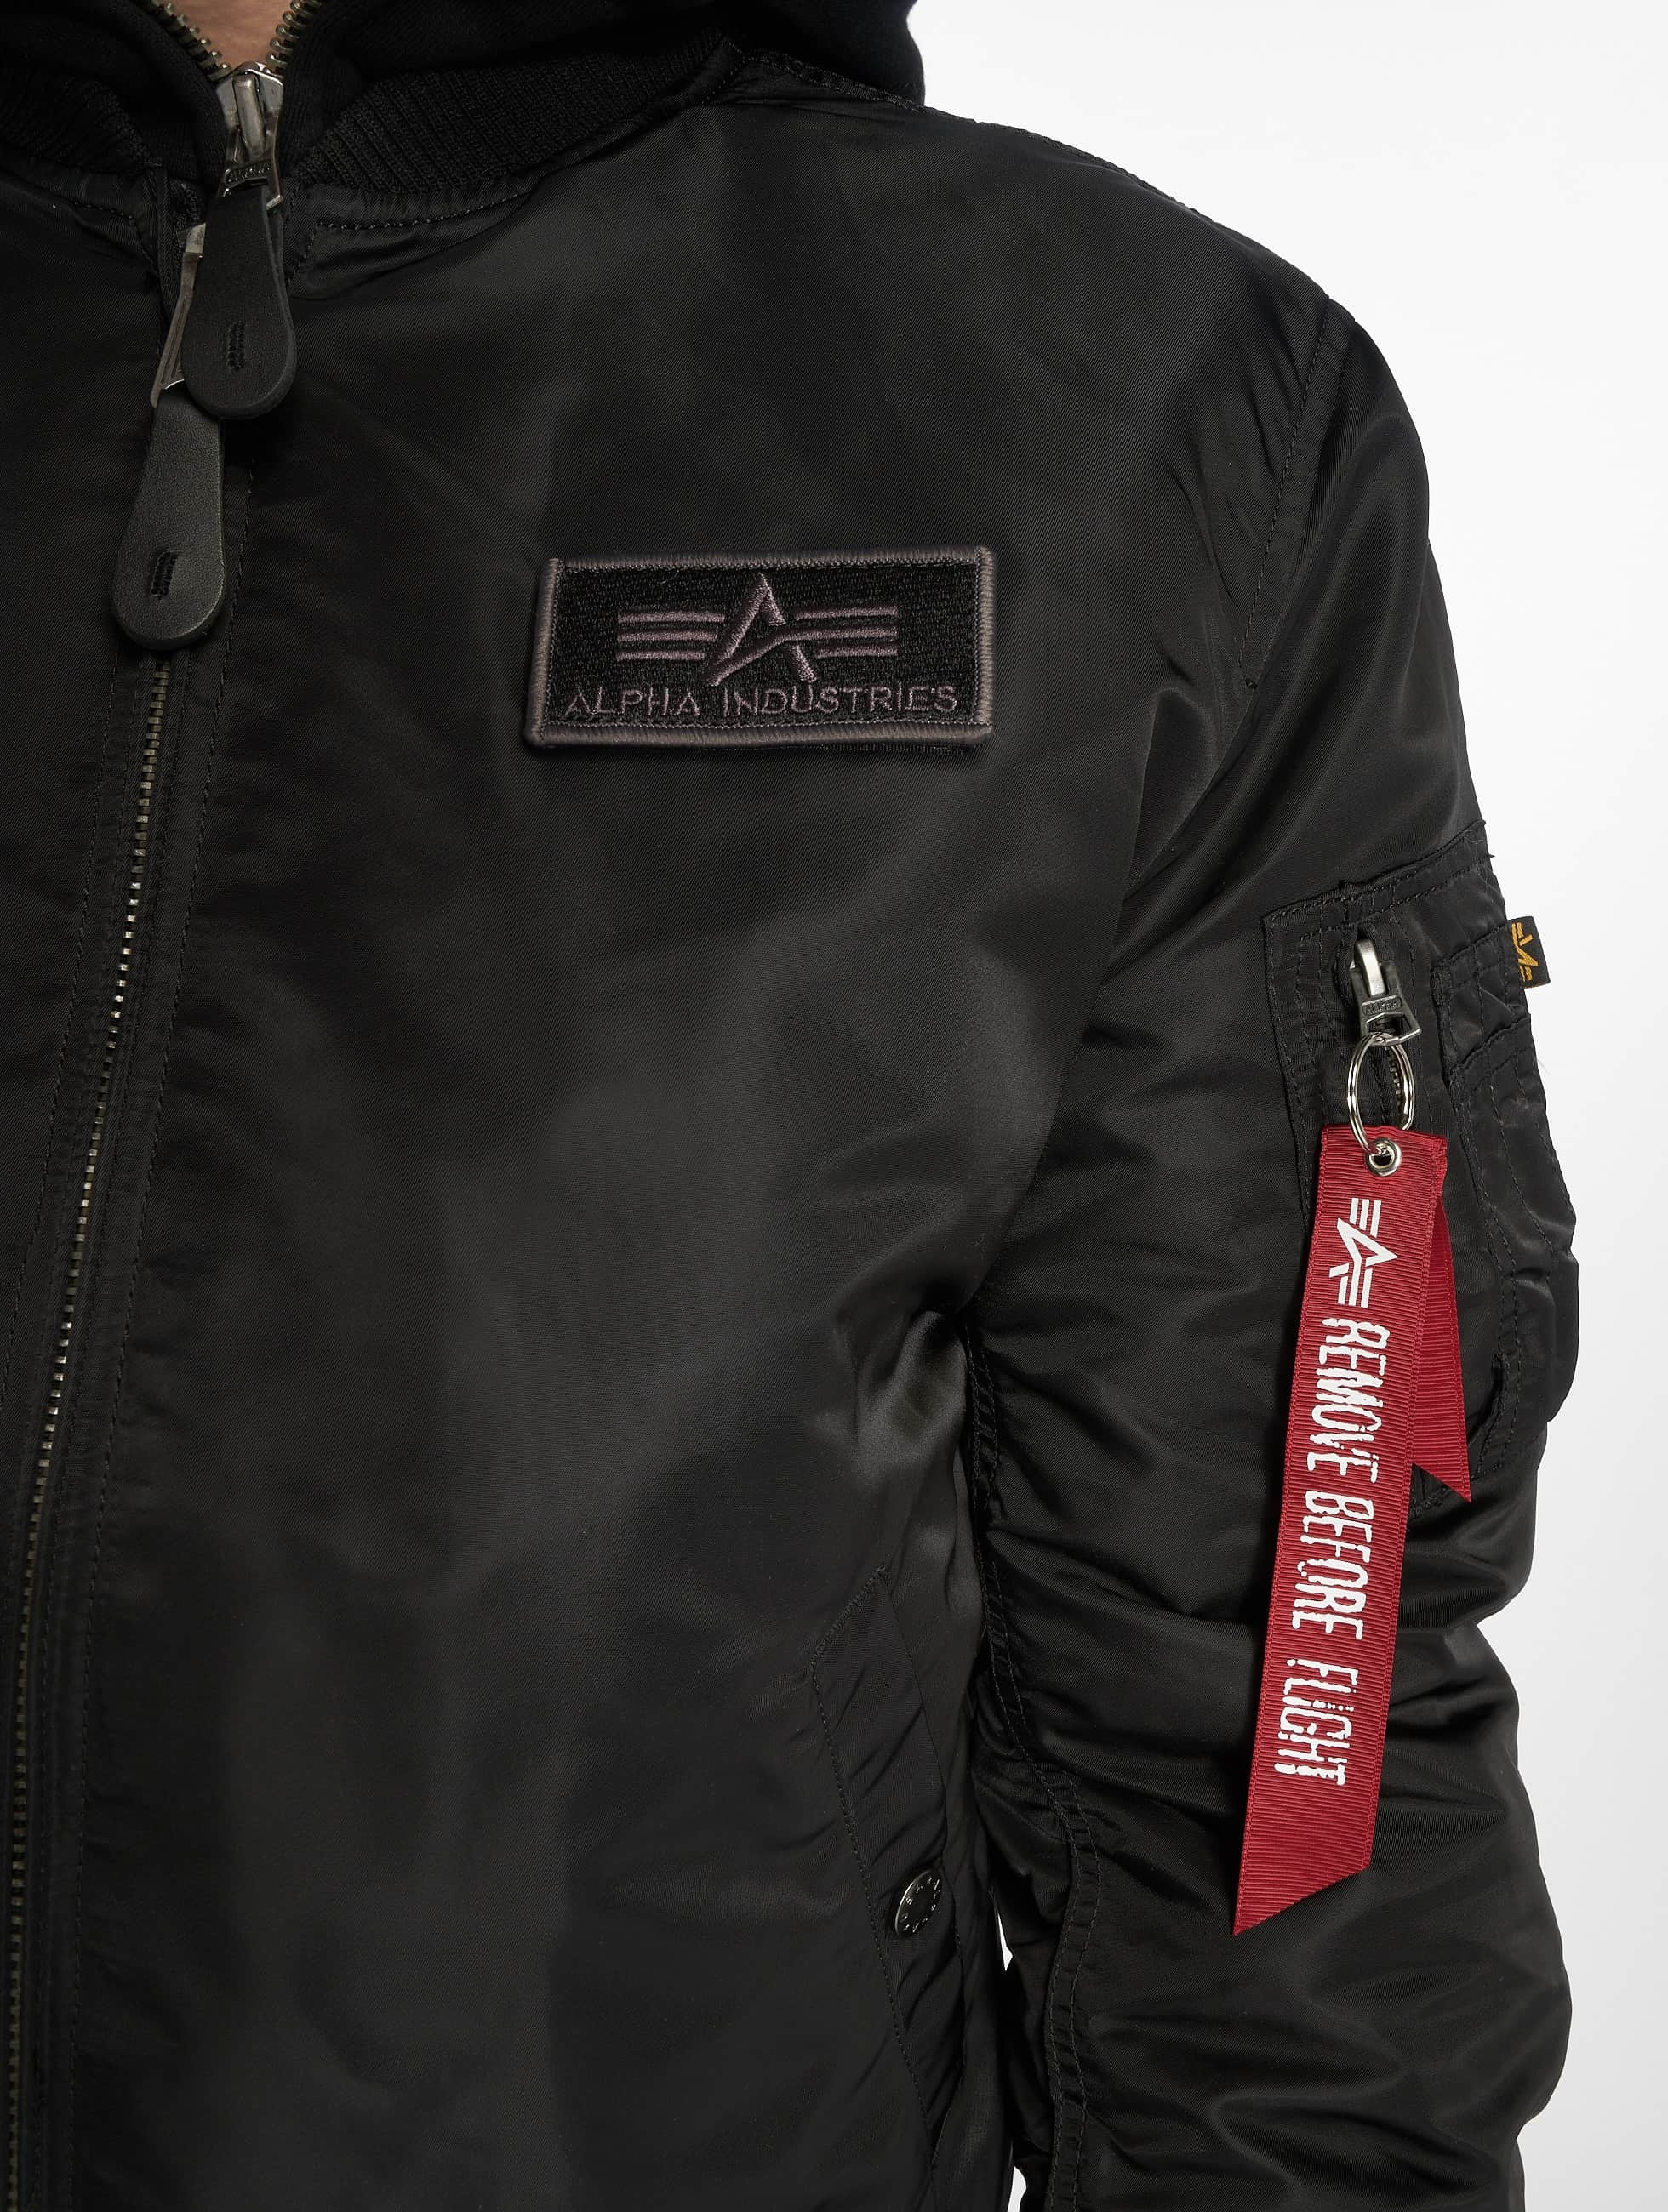 alpha industries herren winterjacke ma 1 d tec bomber jacket. Black Bedroom Furniture Sets. Home Design Ideas